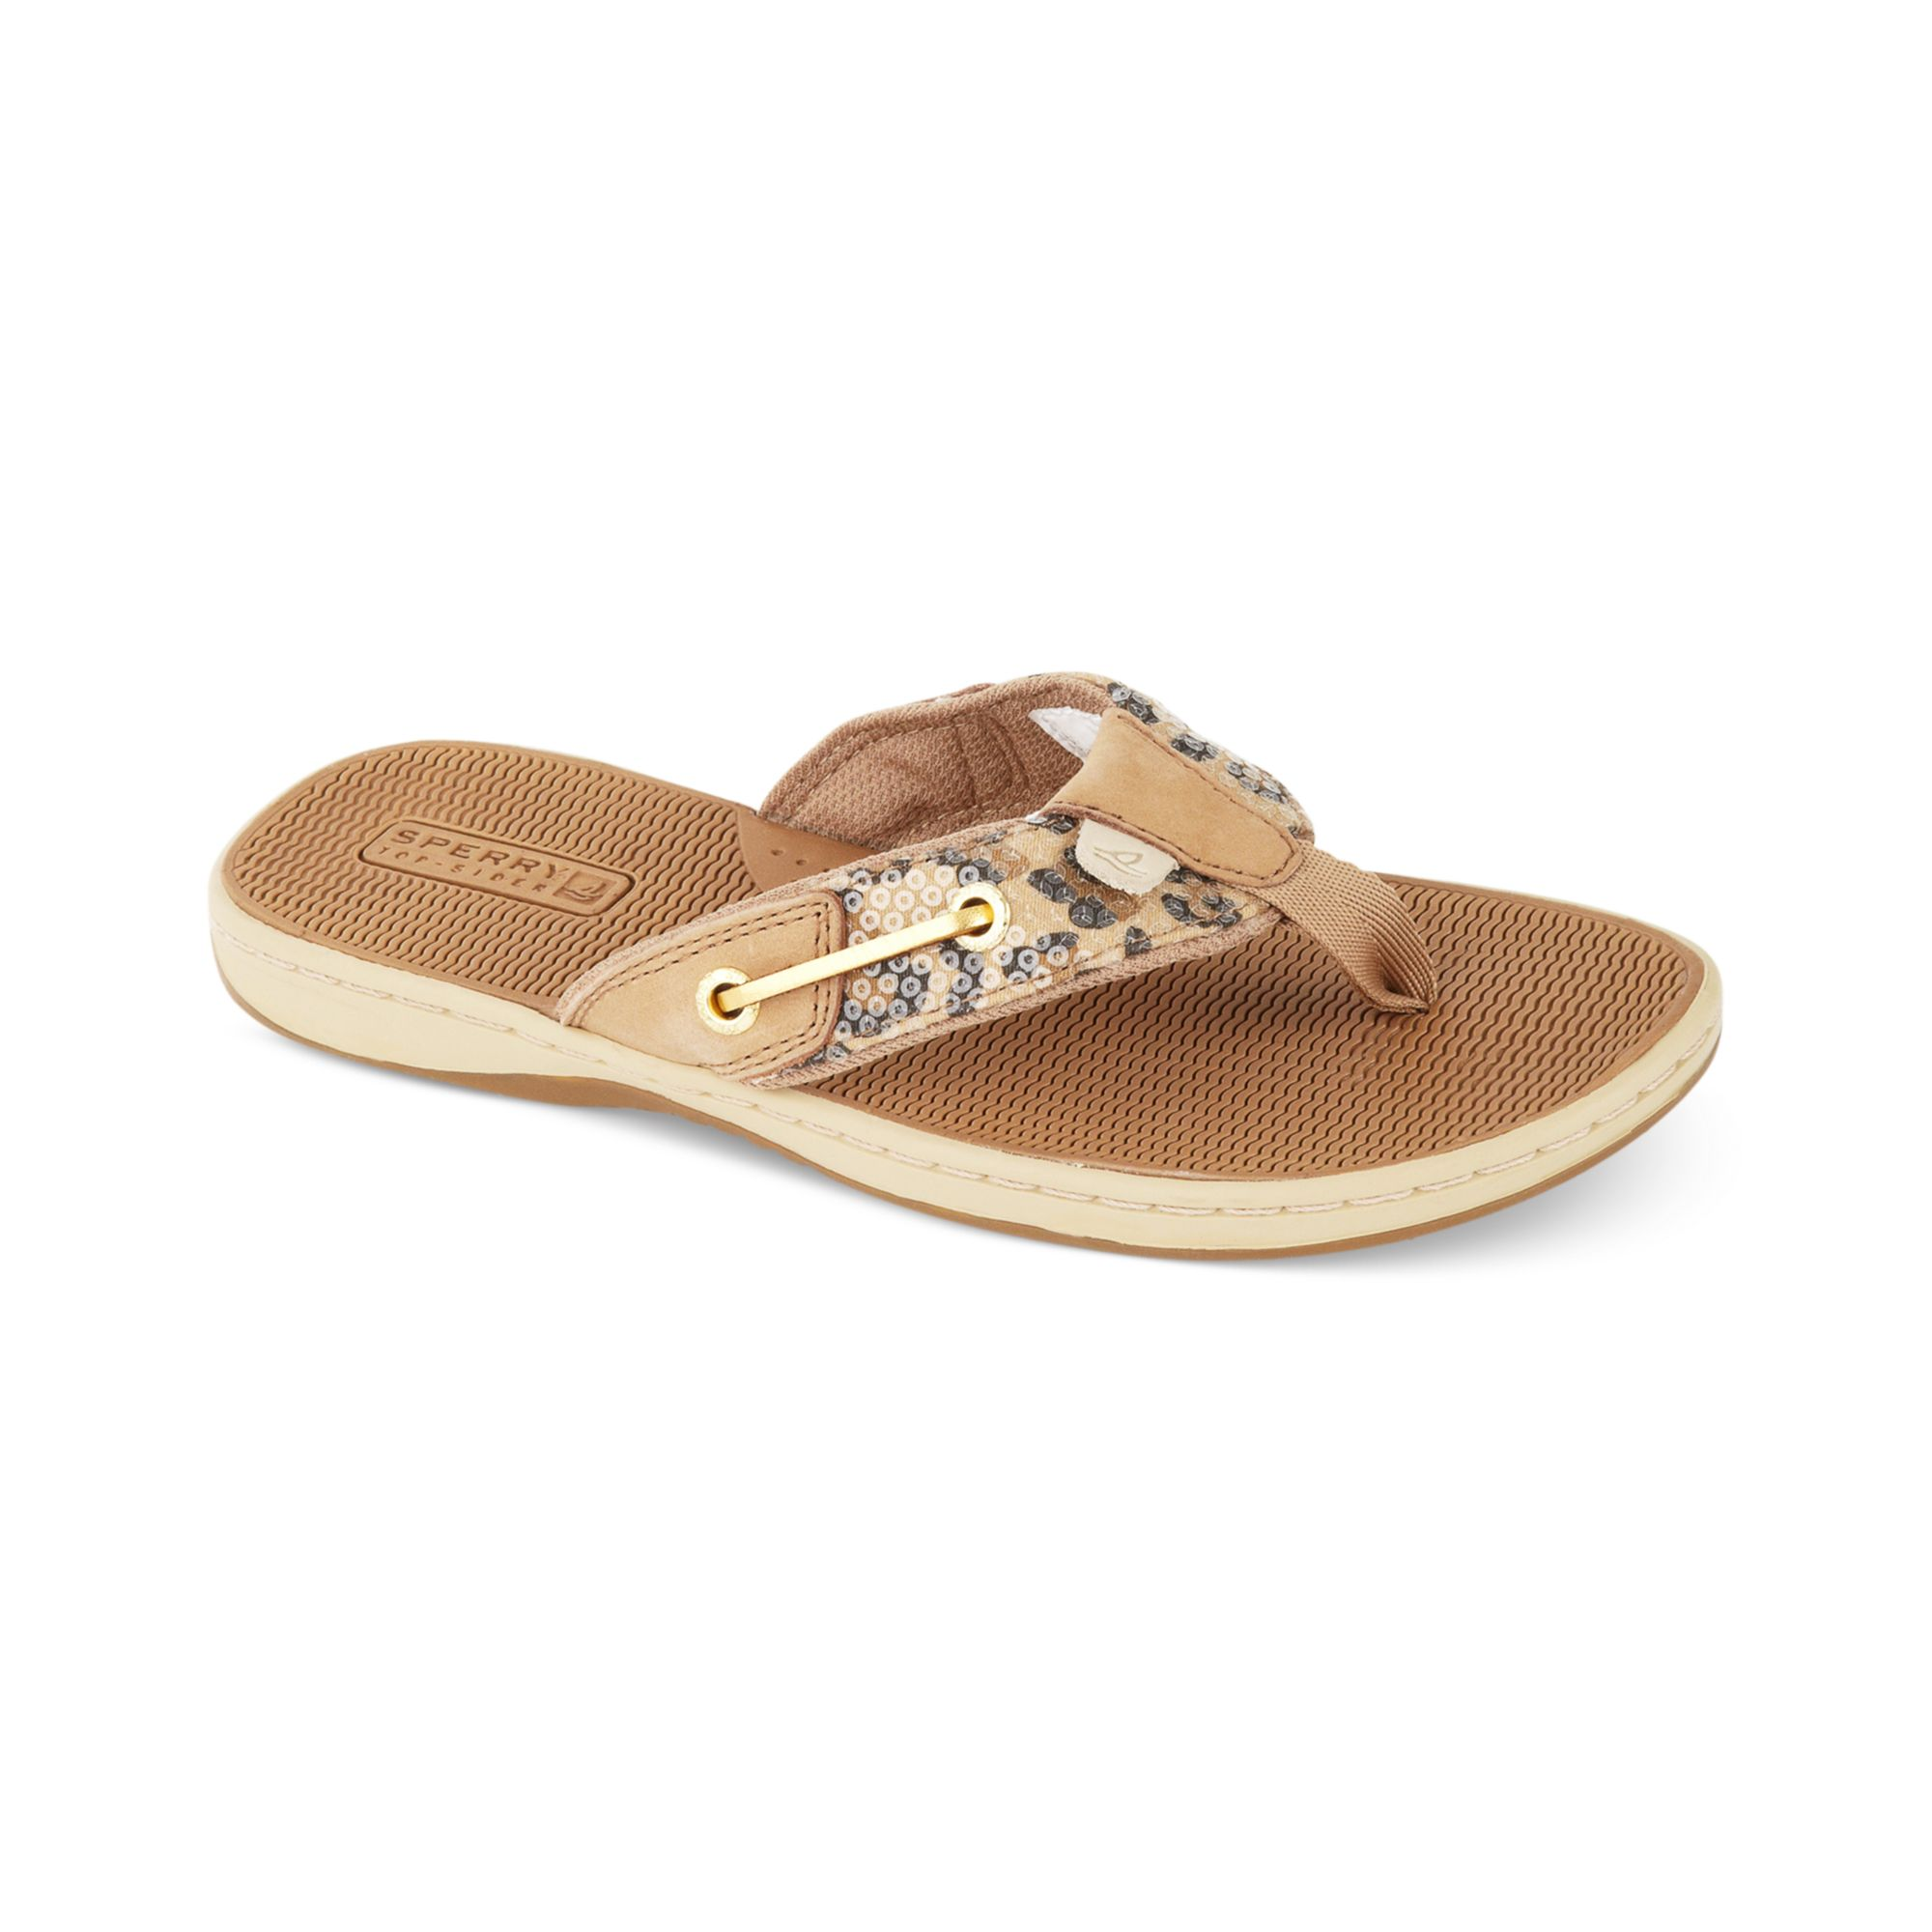 448375433367 Lyst - Sperry Top-Sider Womens Seafish Thong Sandals in Natural